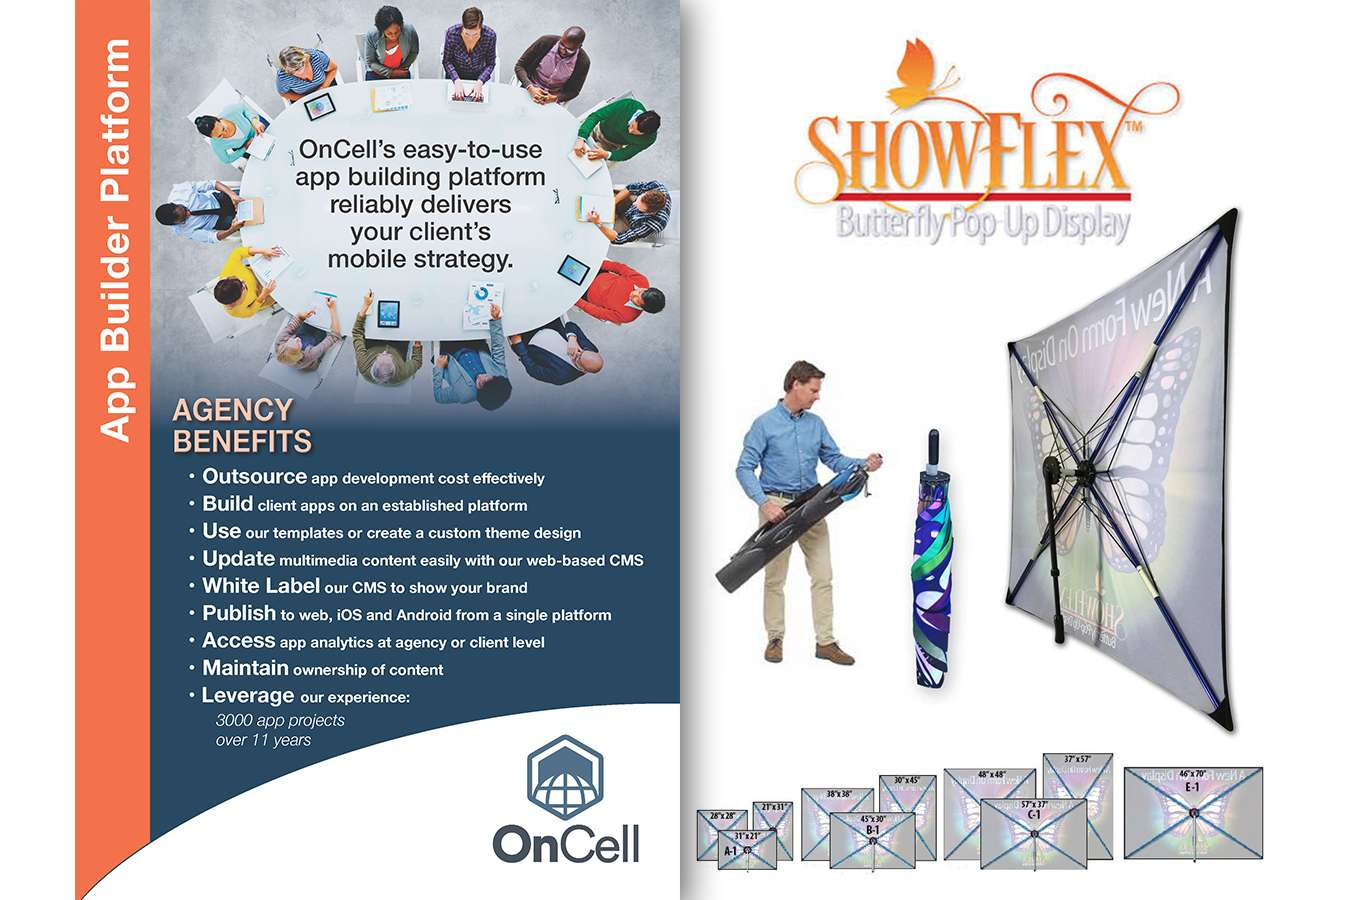 ONCELL APPBldr V2 final : Showflex fabric displays offer light-weight easy to use option for table top to back wall units